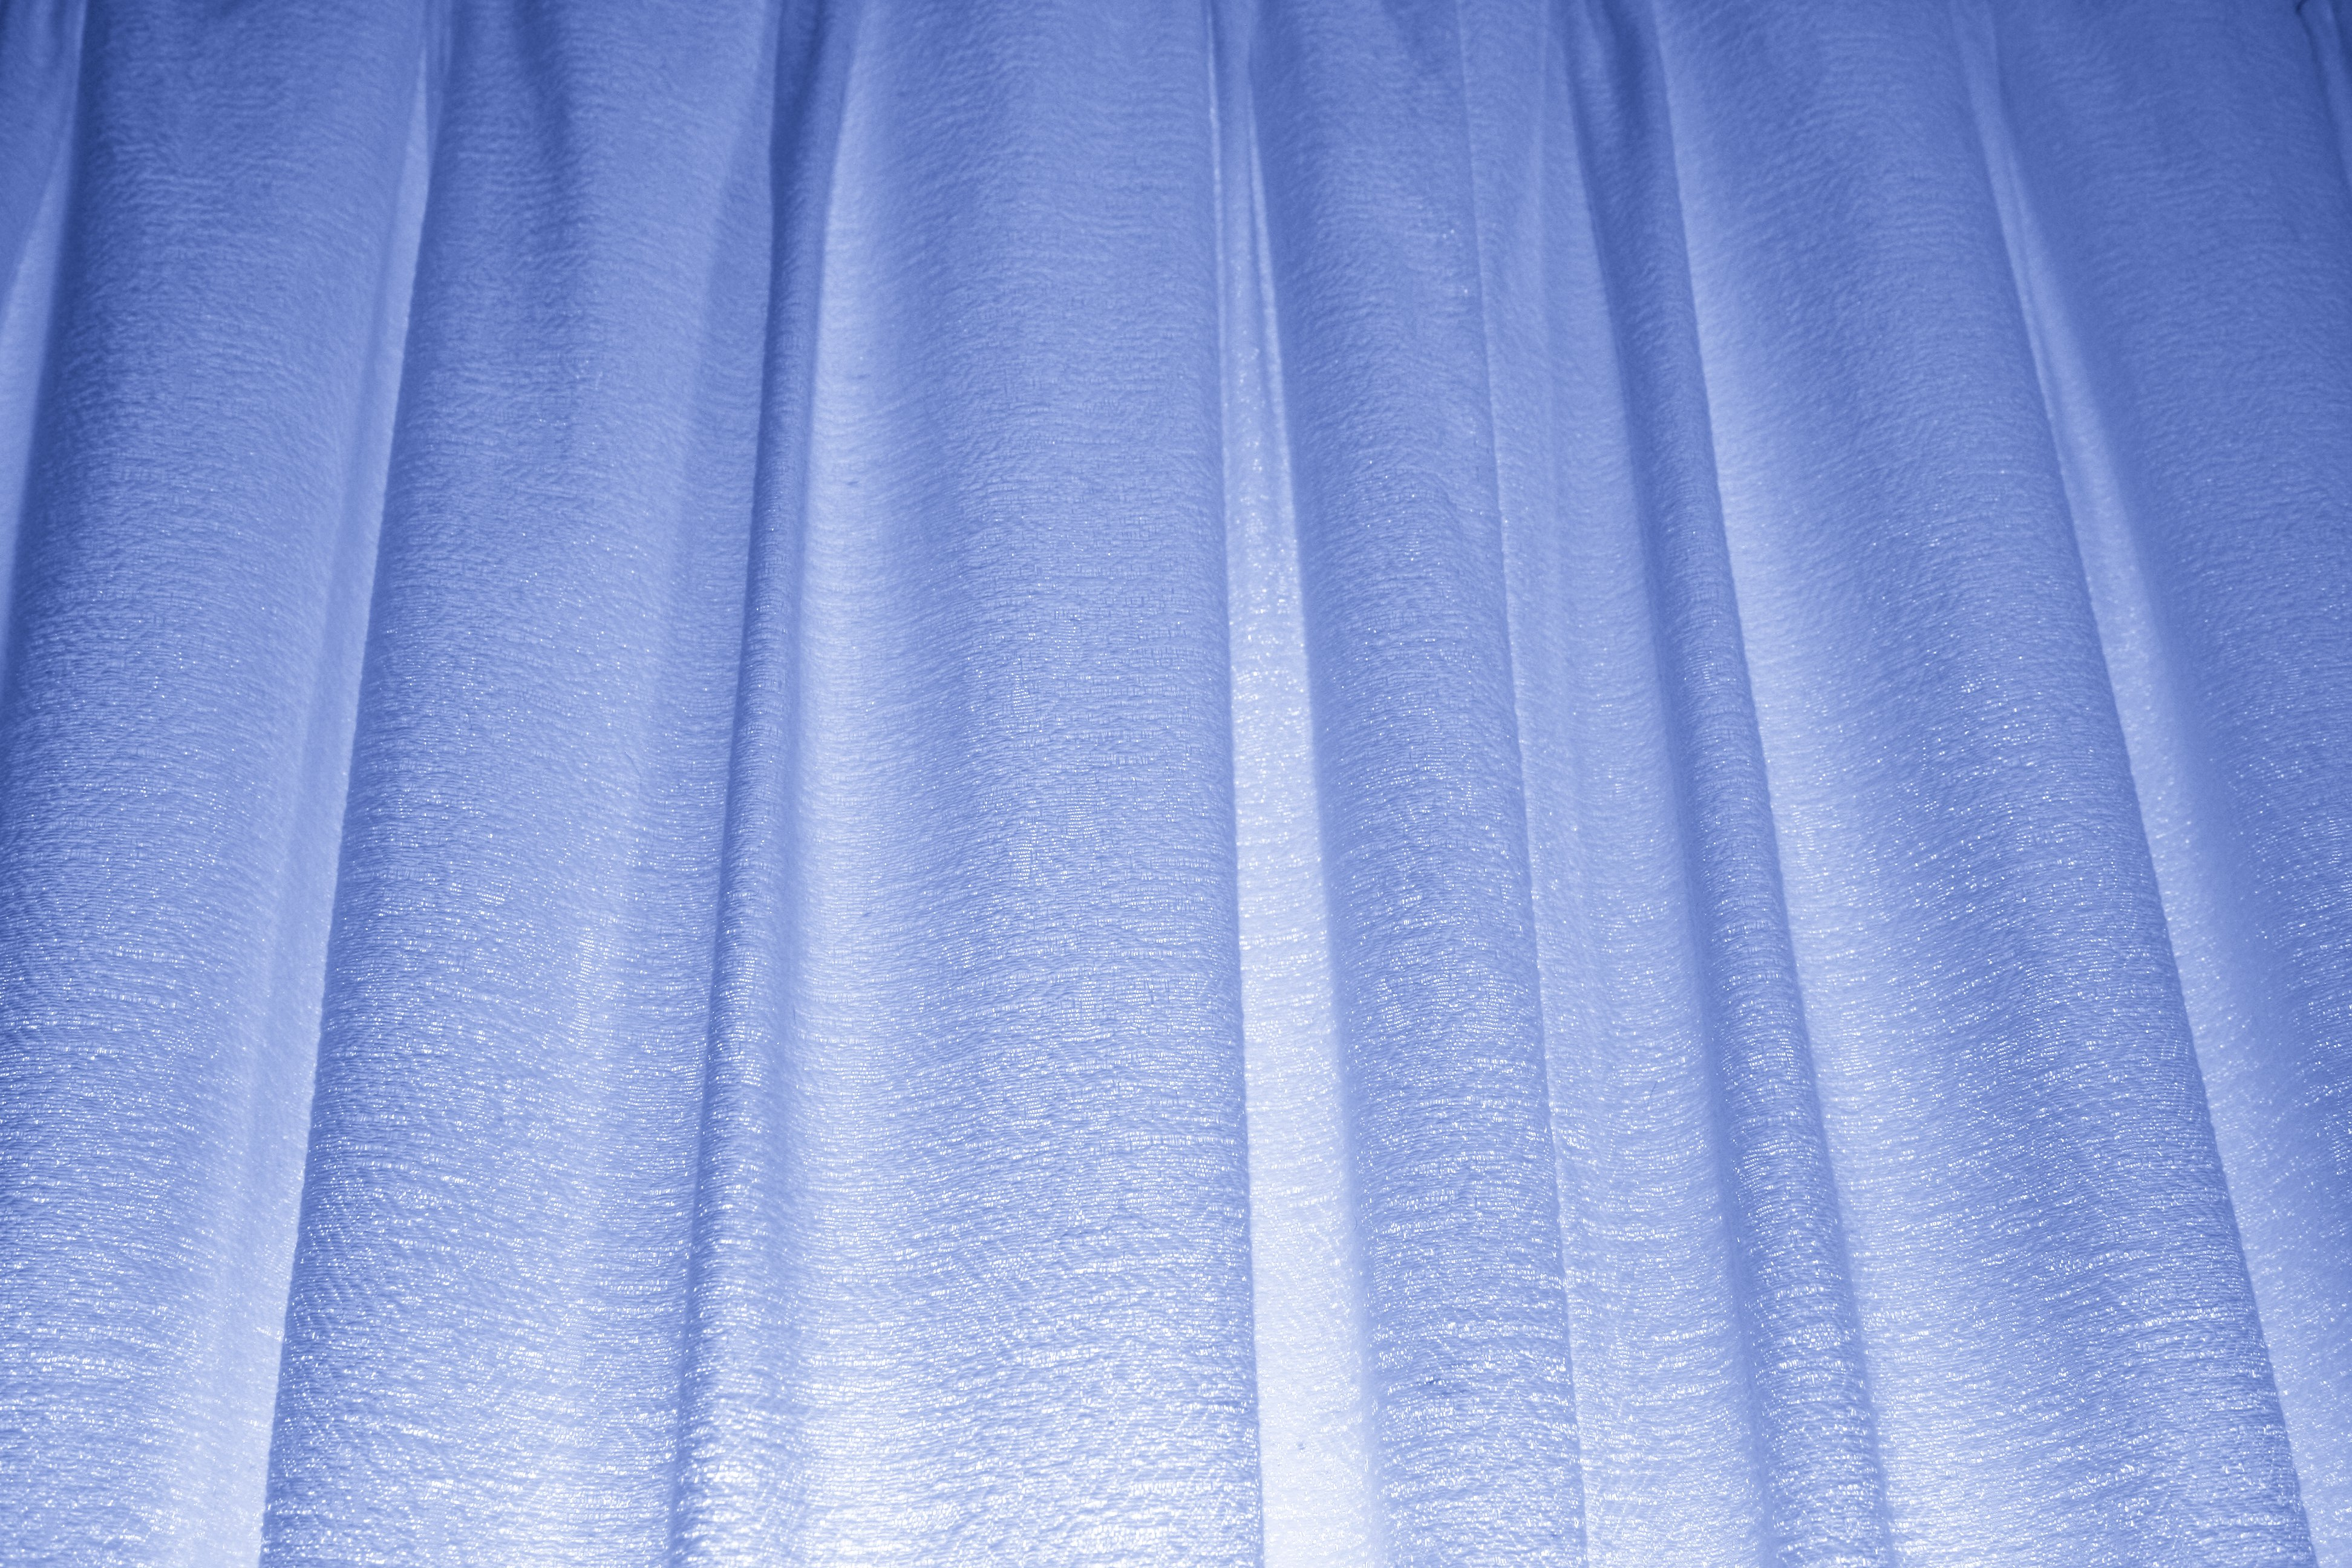 Blue Curtains Texture Picture | Free Photograph | Photos Public Domain for Blue Curtains Texture  61obs